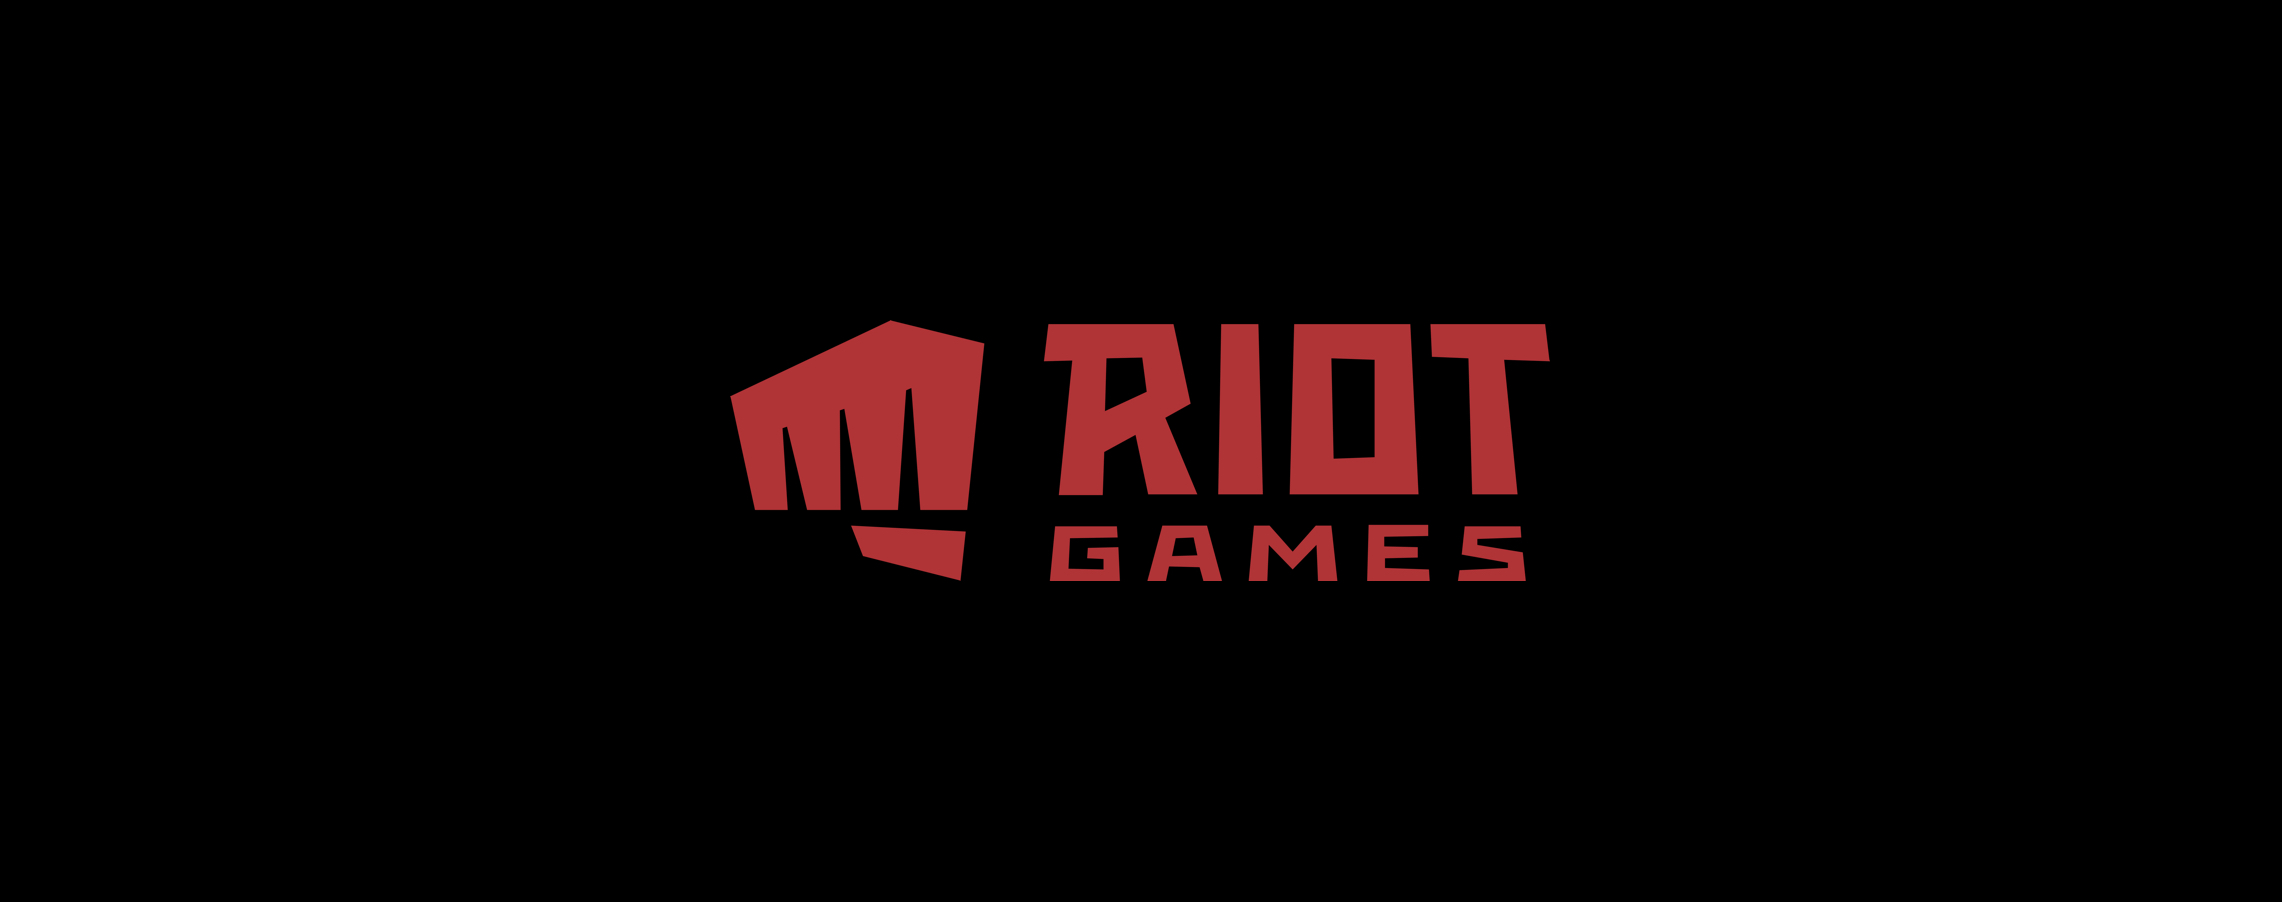 Riot Games inaugirates the latest Champion for League of Legends